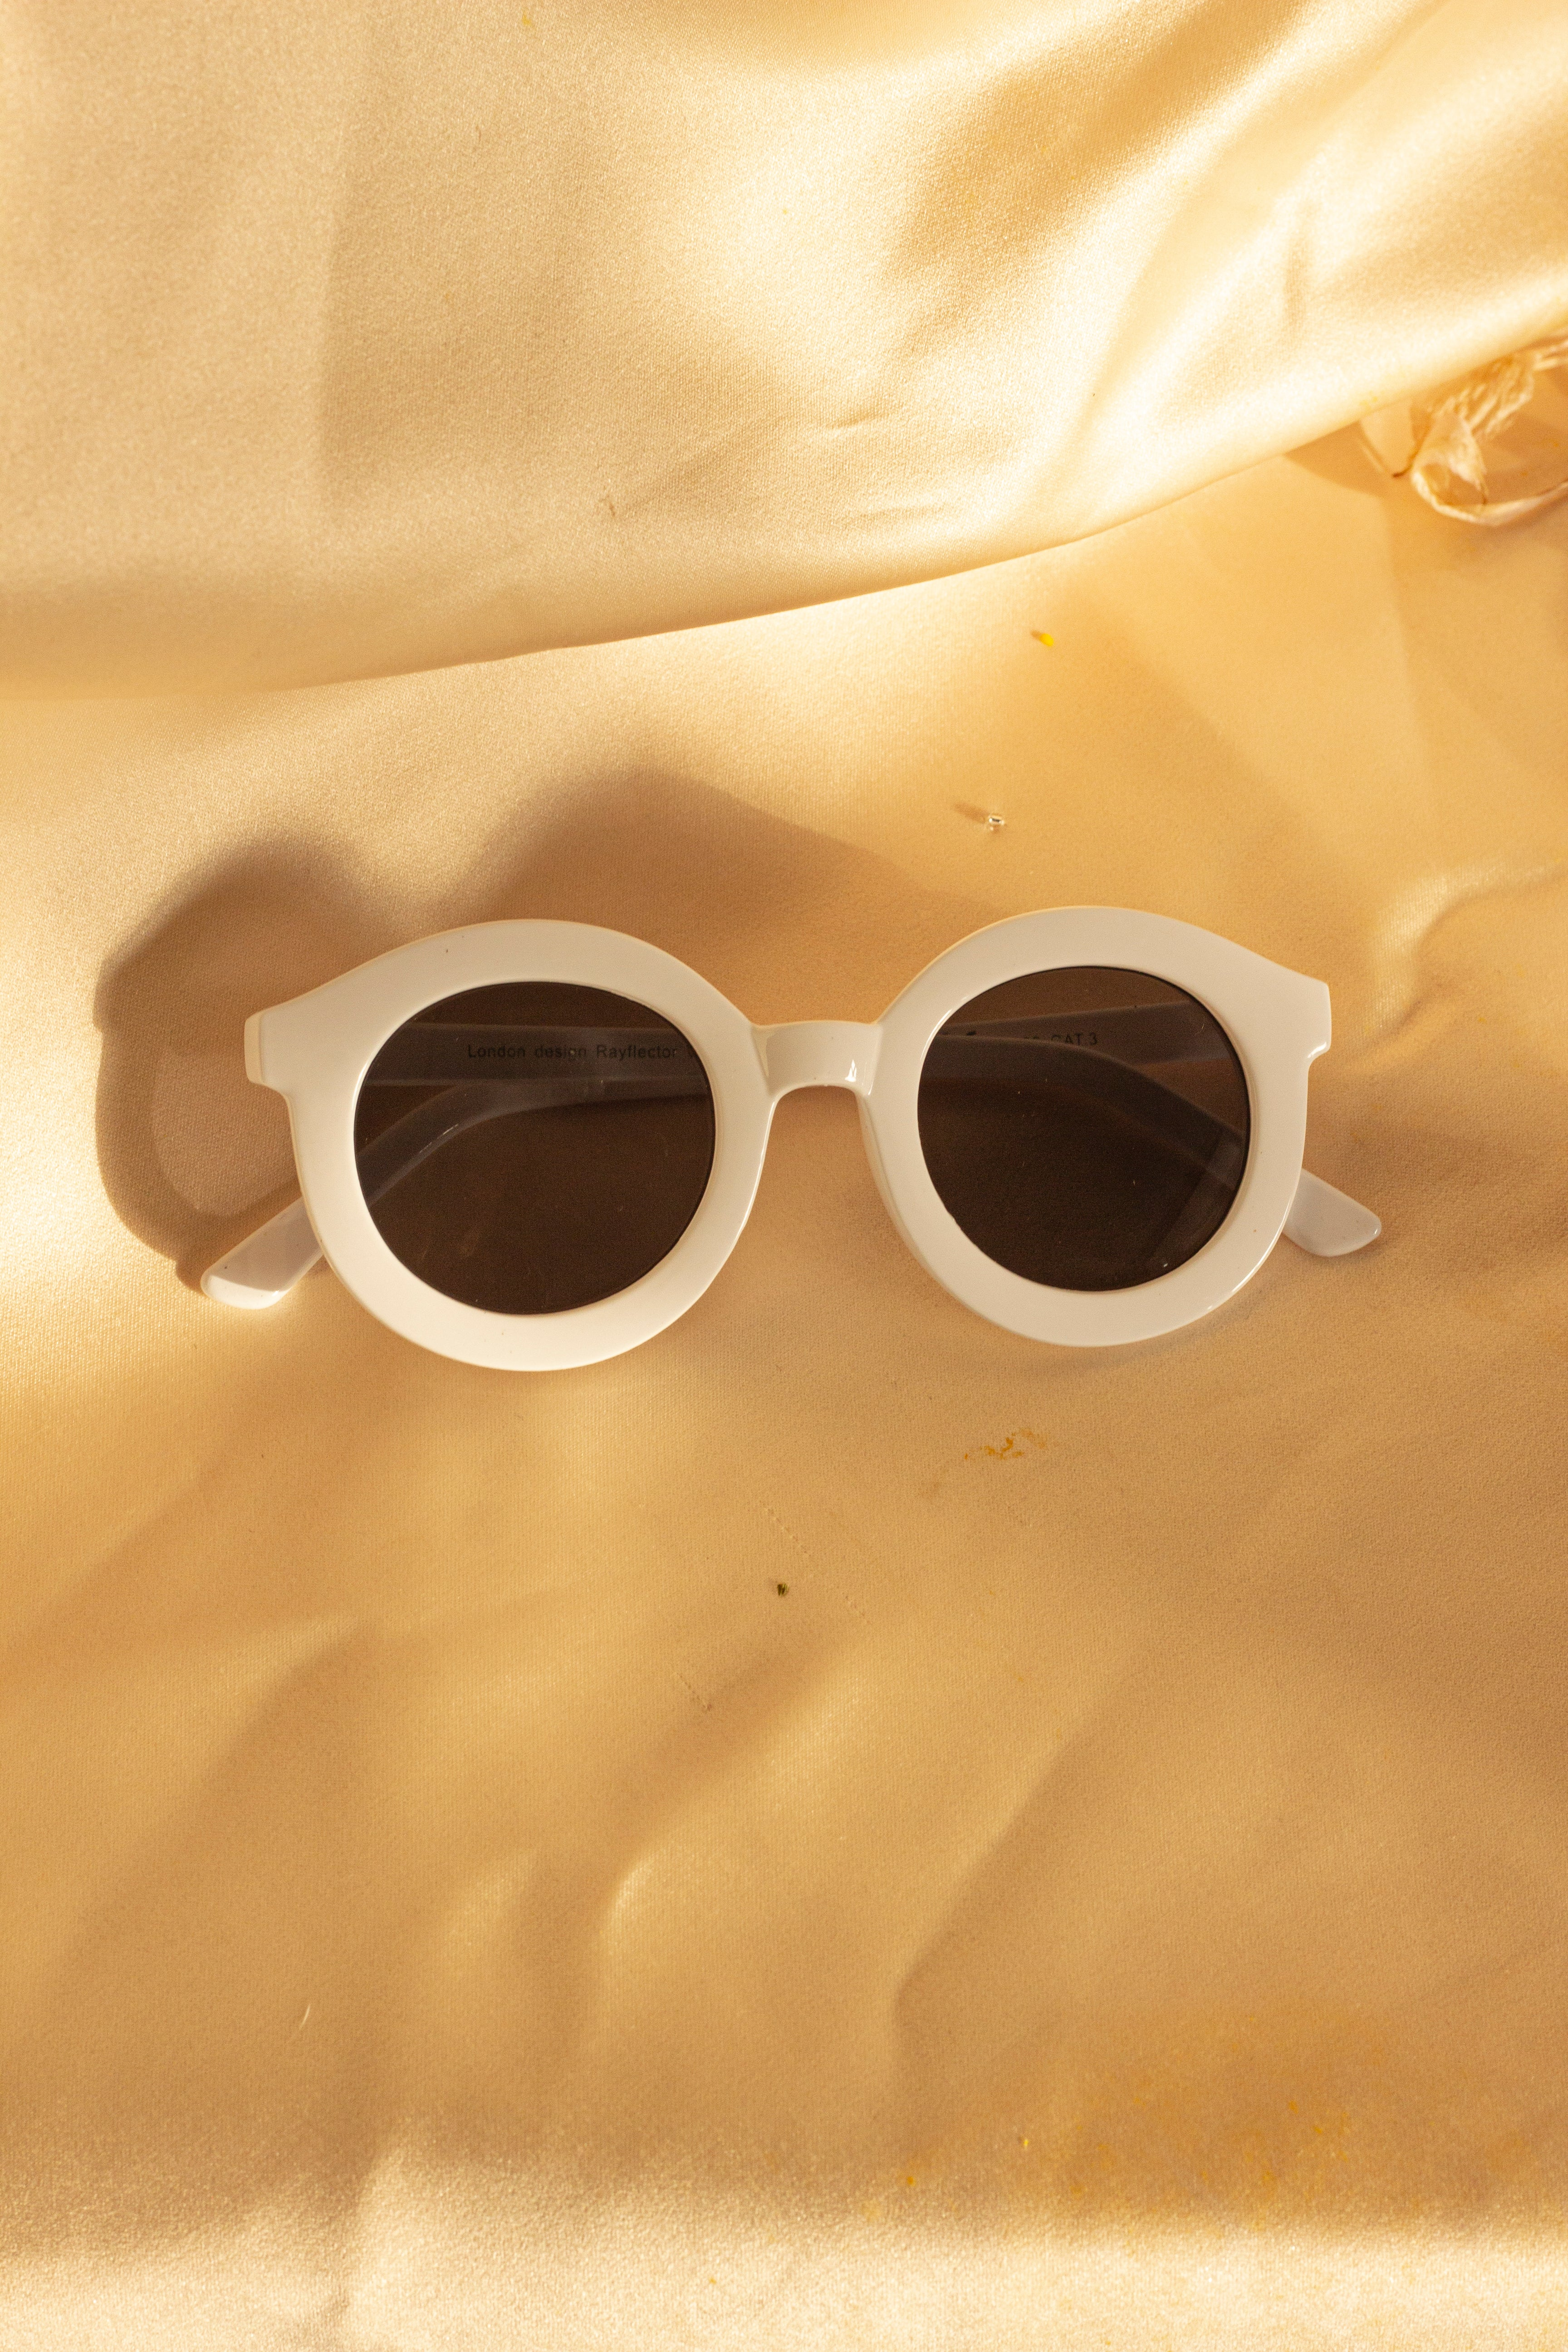 Chunky Round Glasses - Sugar + Style